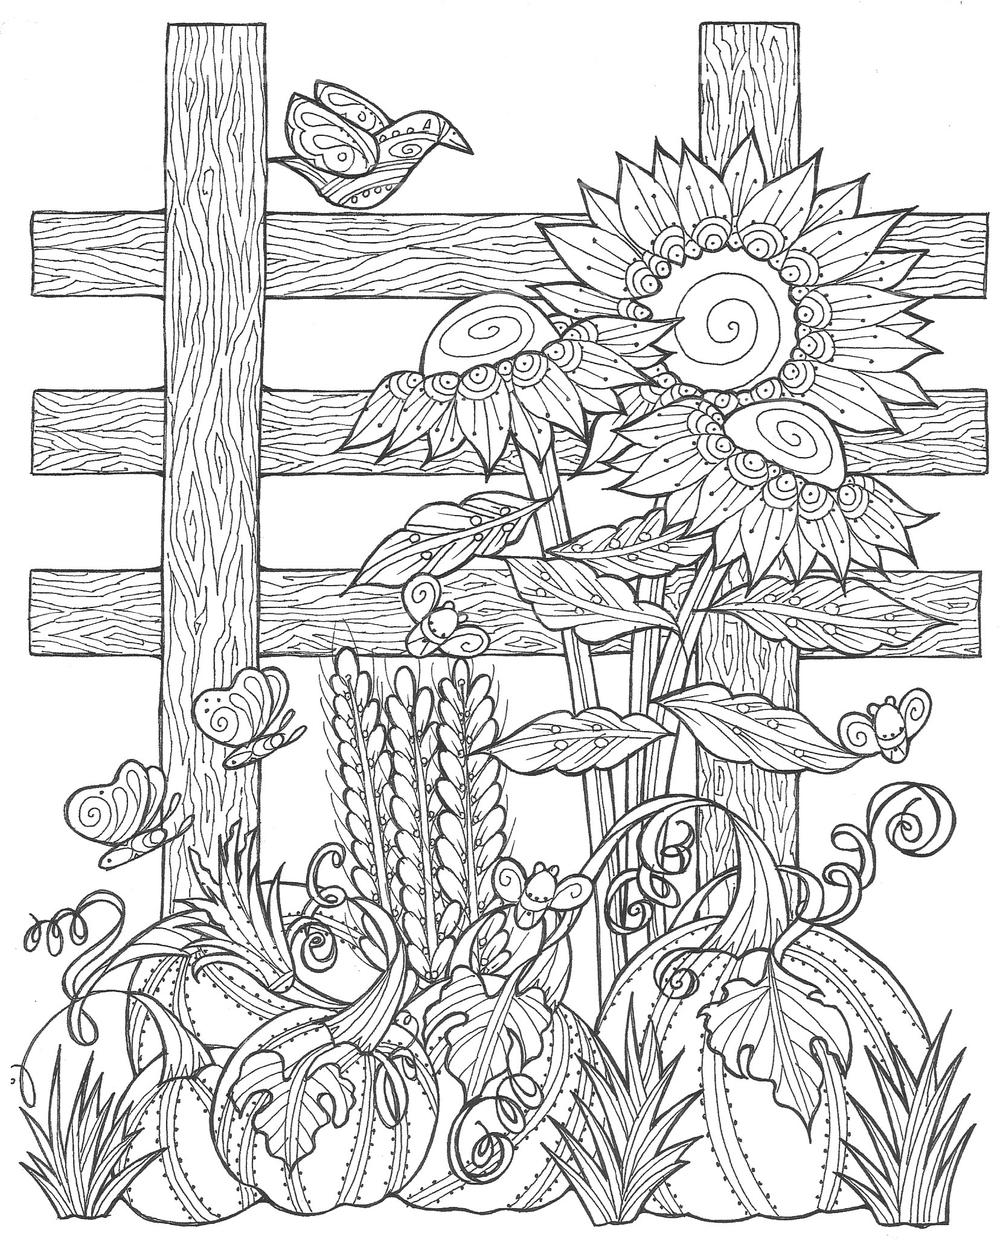 Sunflower Coloring Page. Printables. Apps for Kids. | 1245x1000